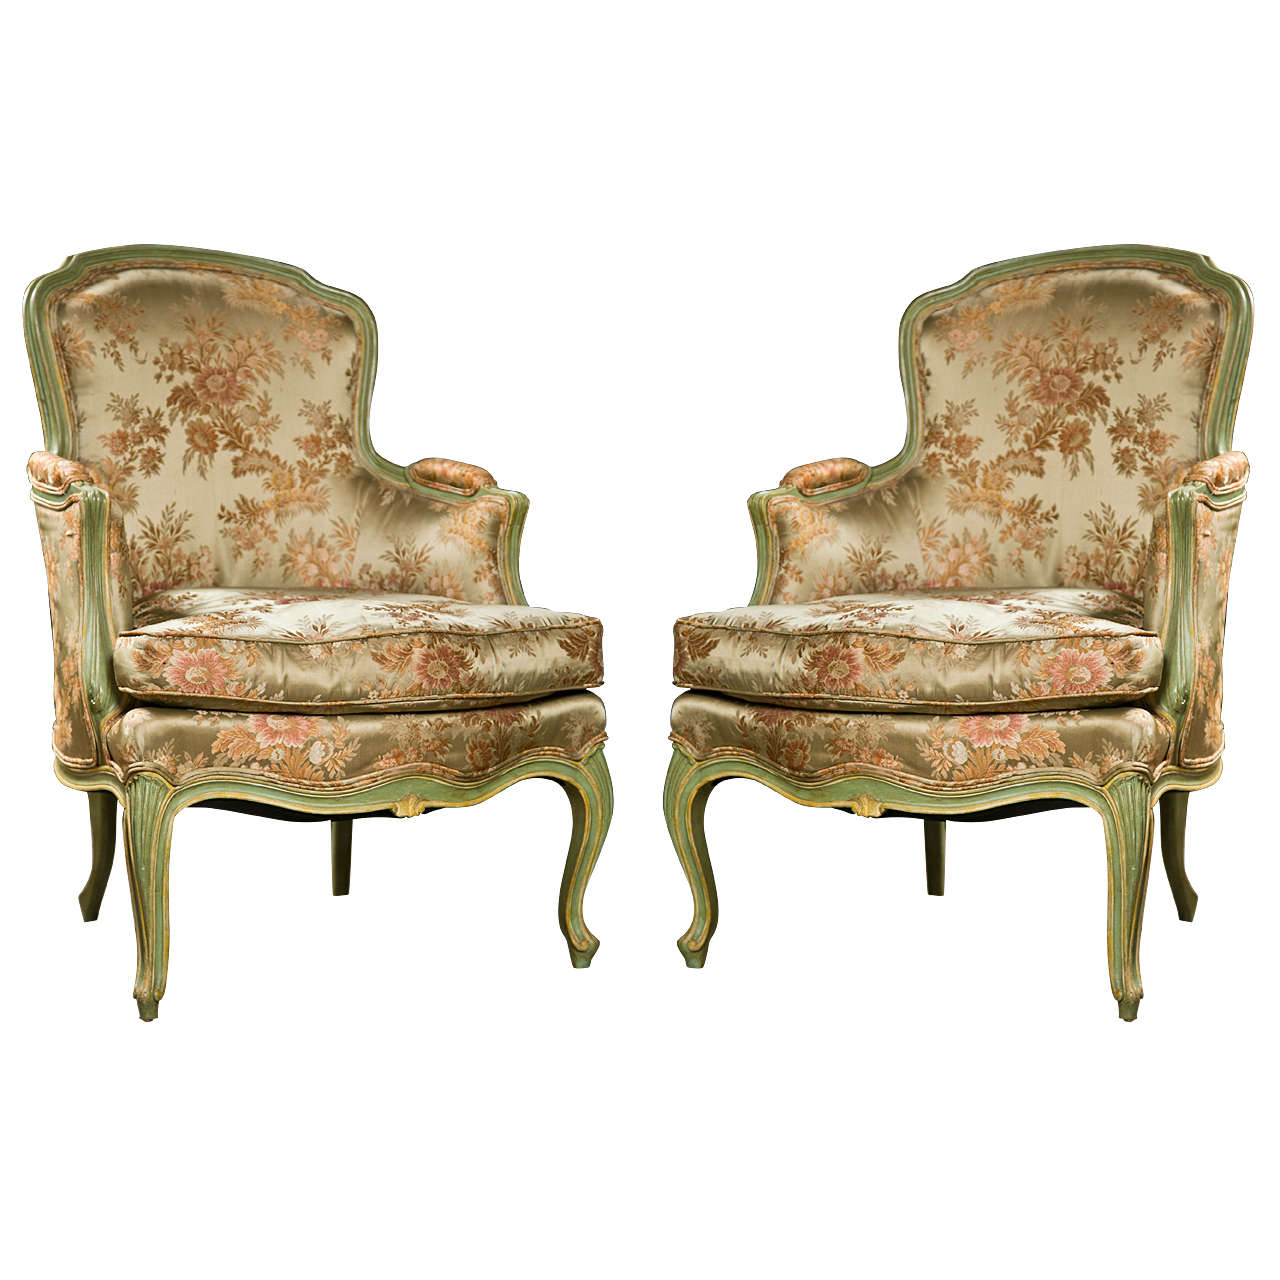 pair of french louis xvi style bergere chairs at 1stdibs. Black Bedroom Furniture Sets. Home Design Ideas